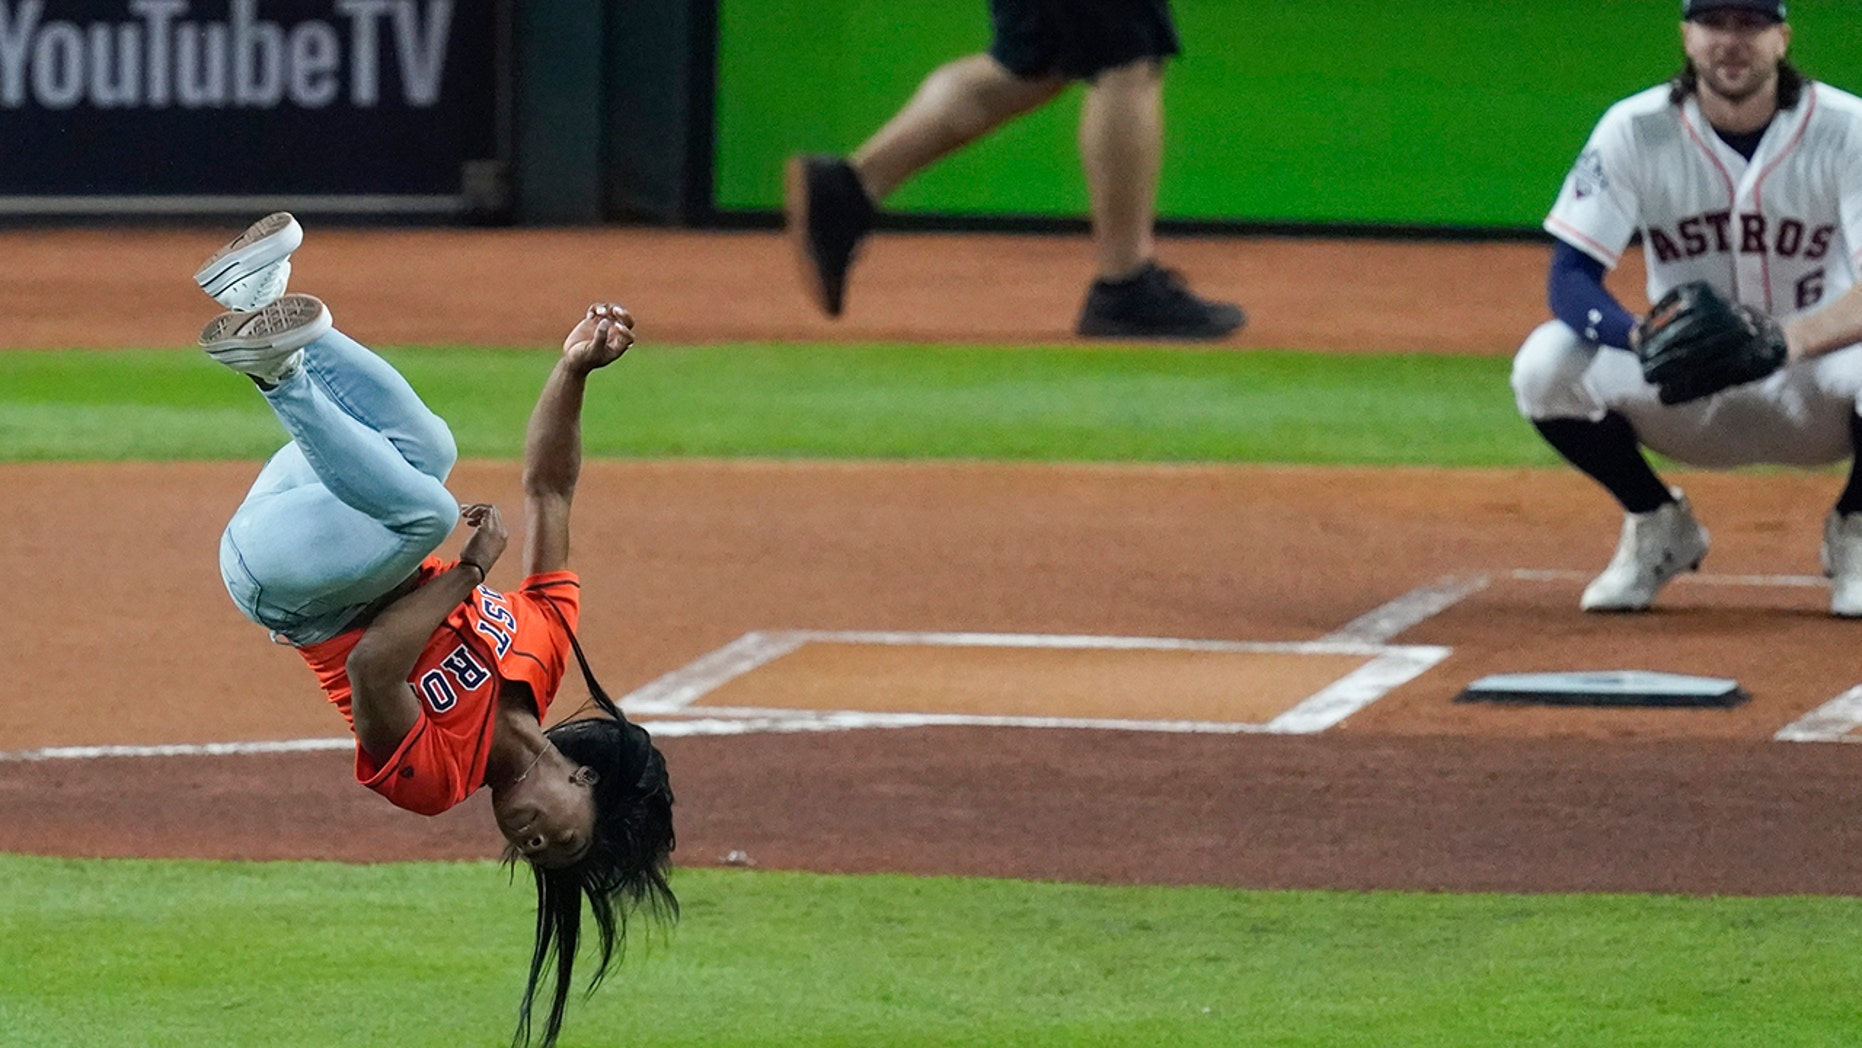 Westlake Legal Group Simone-Biles-Flip Simone Biles adds flip and twist to her first pitch at Game 2 of World Series Gerren Keith Gaynor fox-news/sports/mlb fox-news/person/simone-biles fox news fnc/sports fnc article 2b845005-6ba6-59d0-9265-c920ab466270